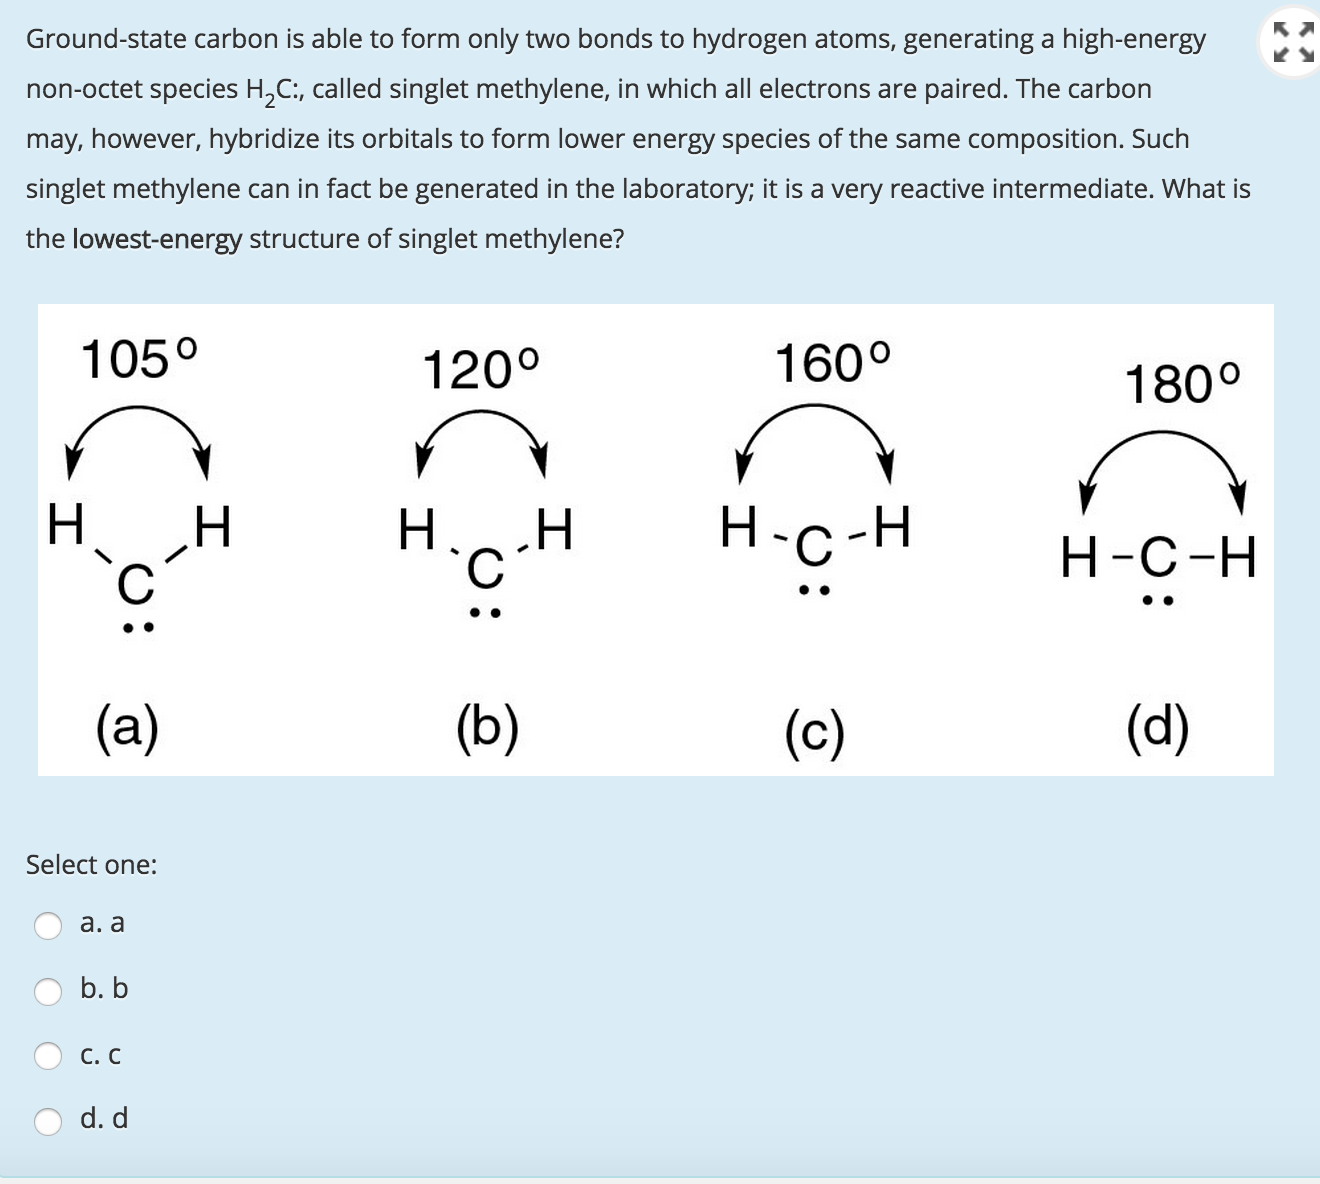 Chemistry archive august 31 2015 chegg image for ground state carbon is able to form only two bonds to hydrogen atoms biocorpaavc Image collections